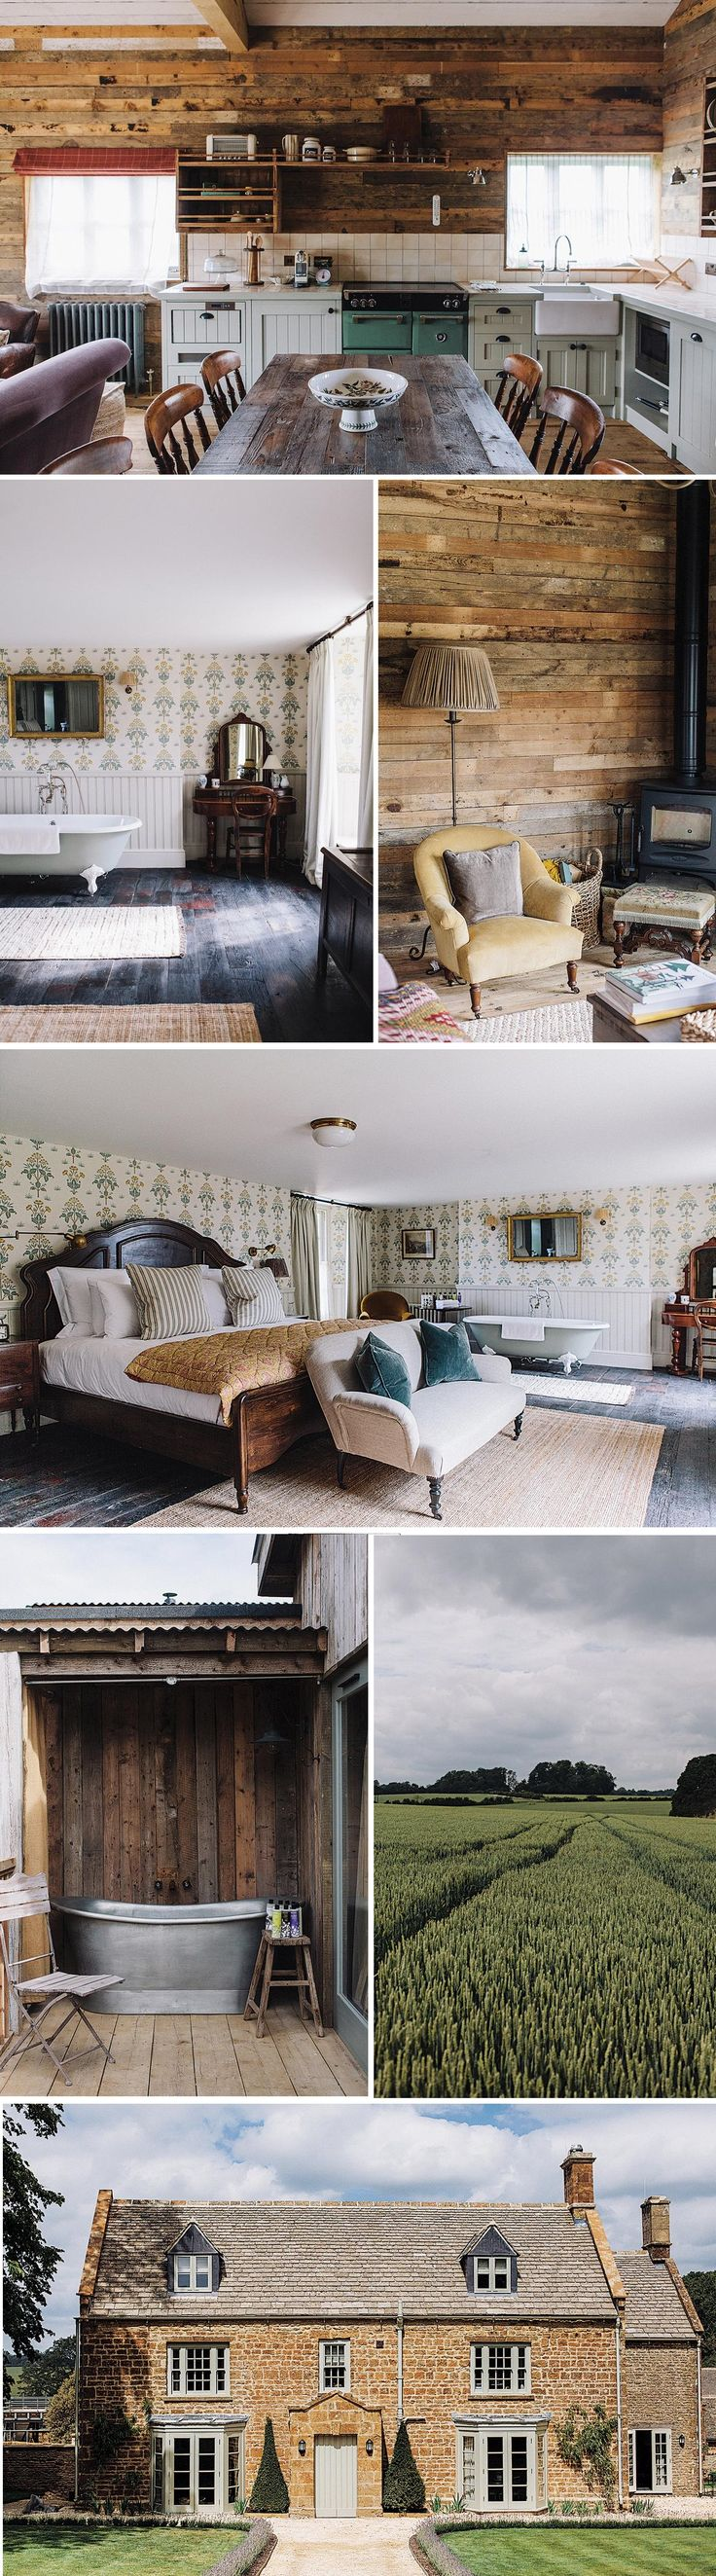 Soho Farmhouse In Oxfordshire Via The Wall Street Journal- @heathersibly Picture this: Austin and I fly to visit without kiddos and we all spend a long weekend here. Maybe in 20 years?